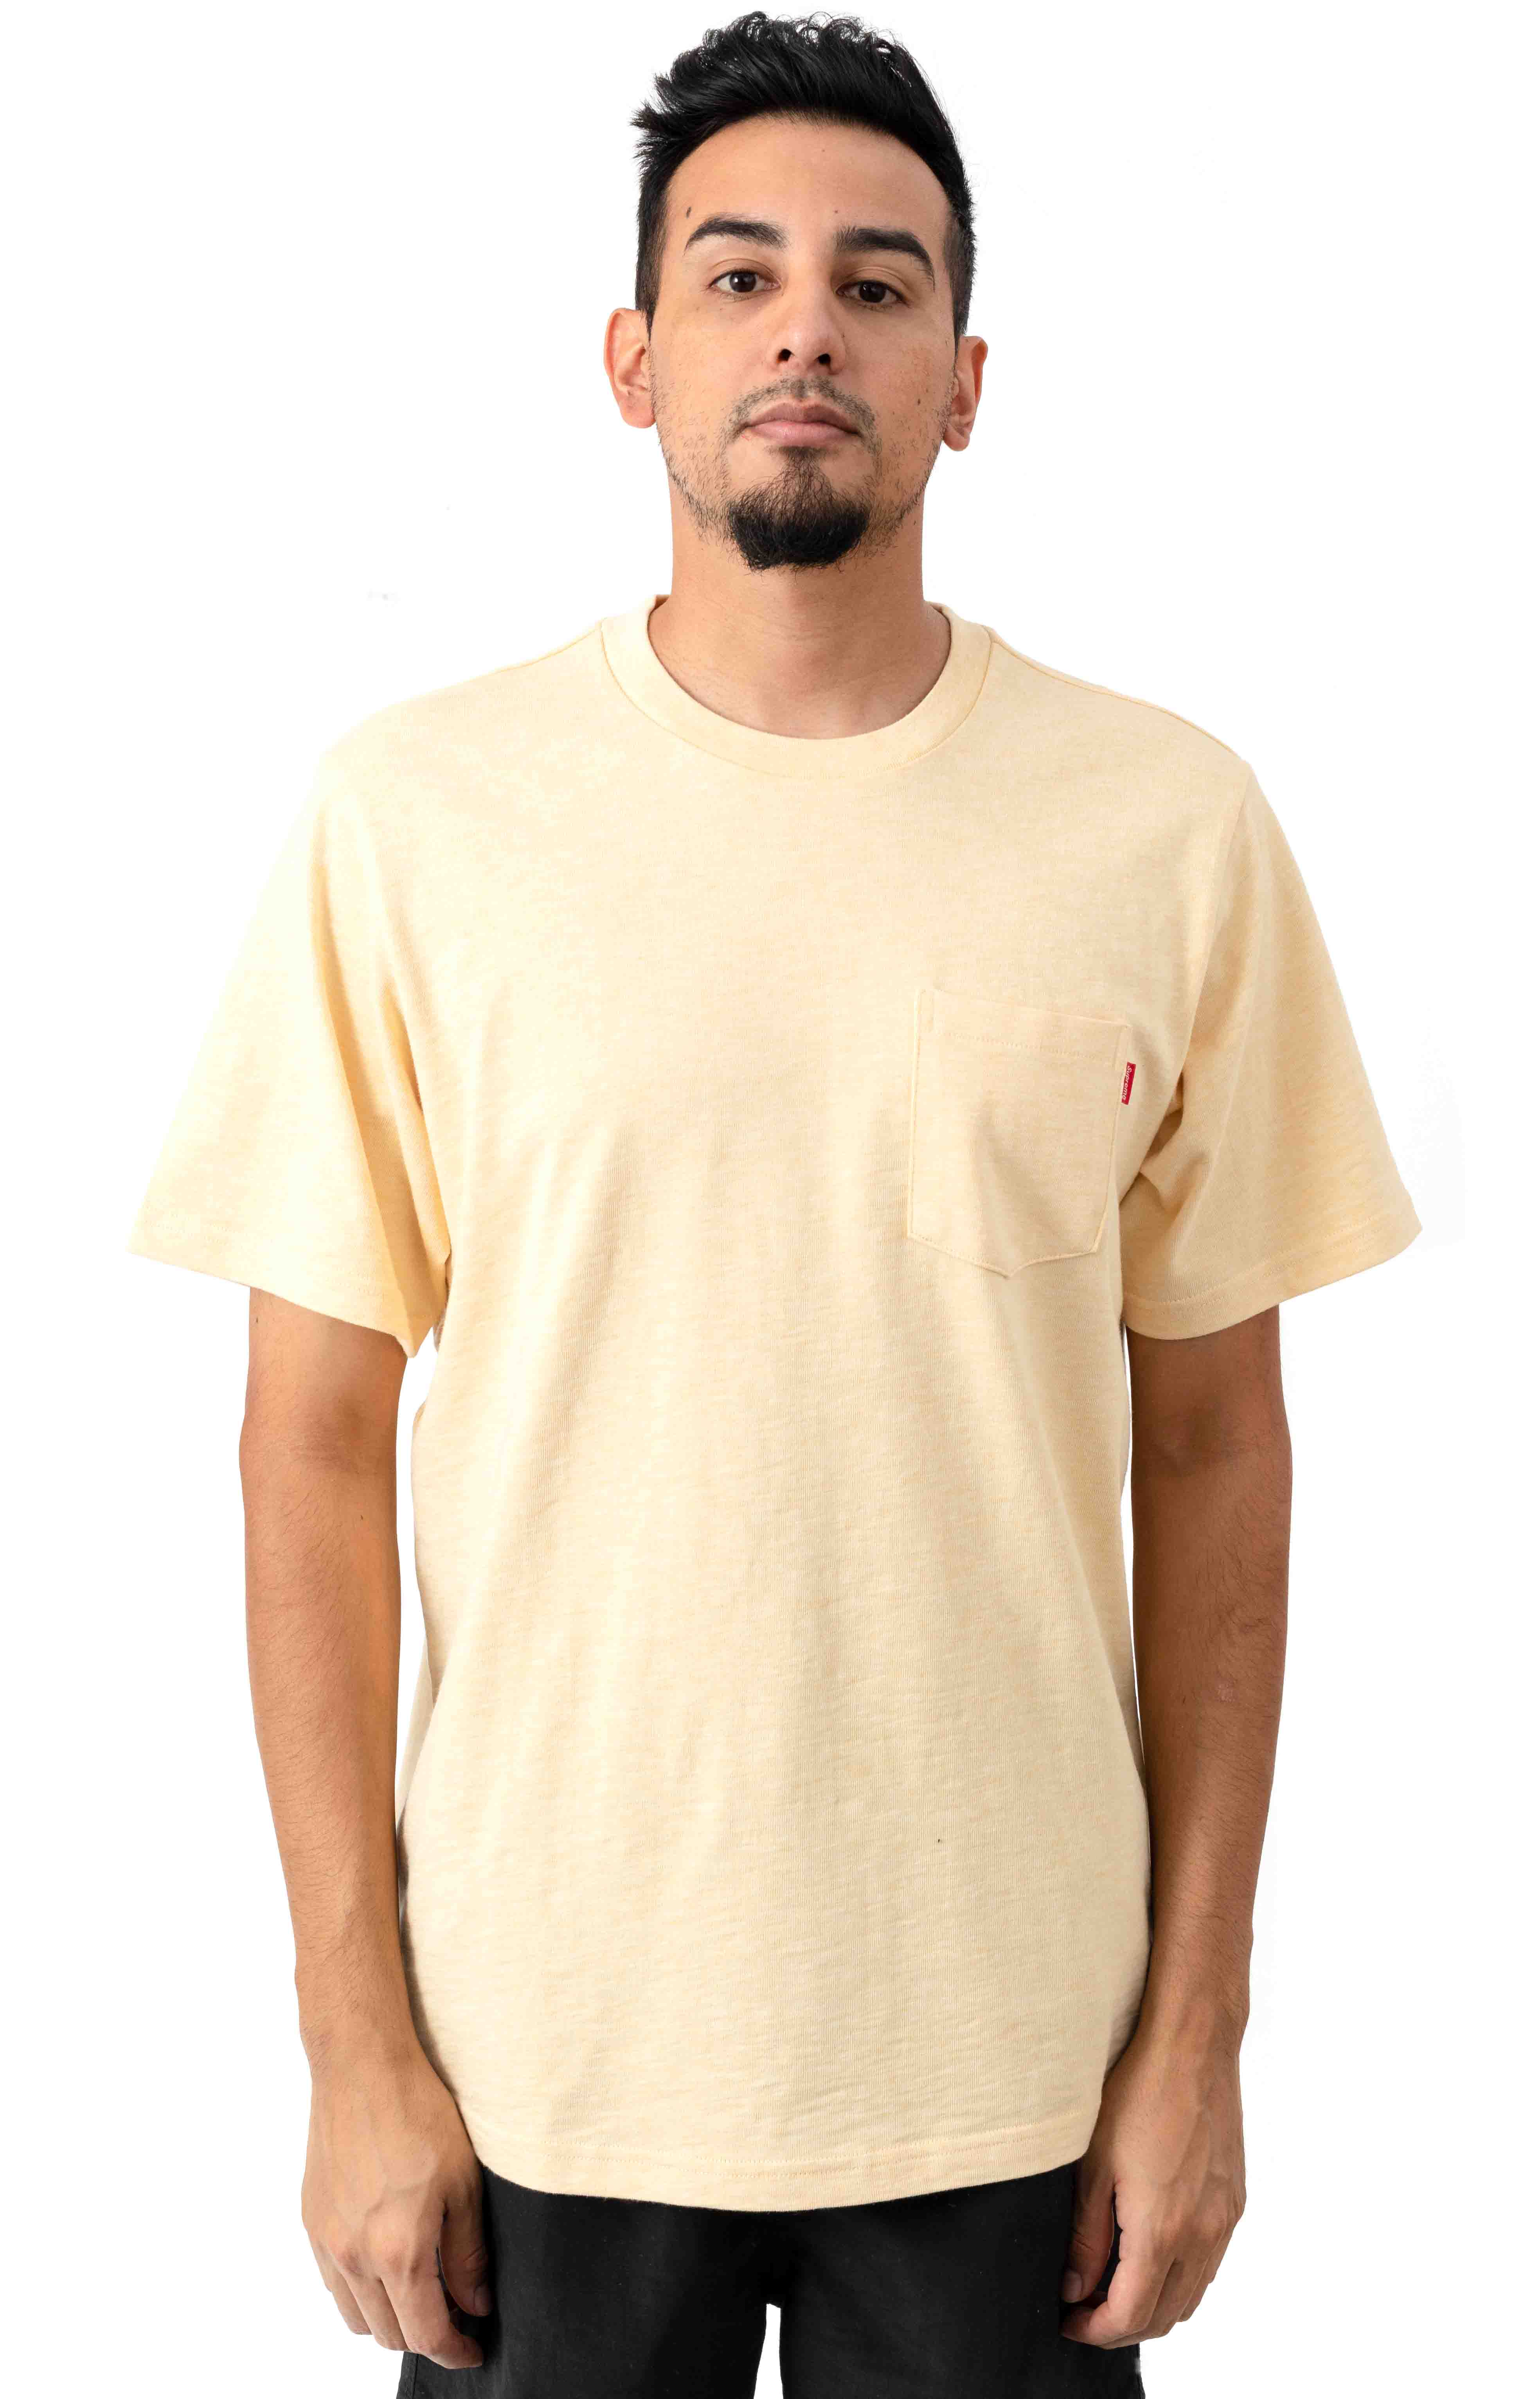 S/S Pocket T-Shirt - Pale Ylellow